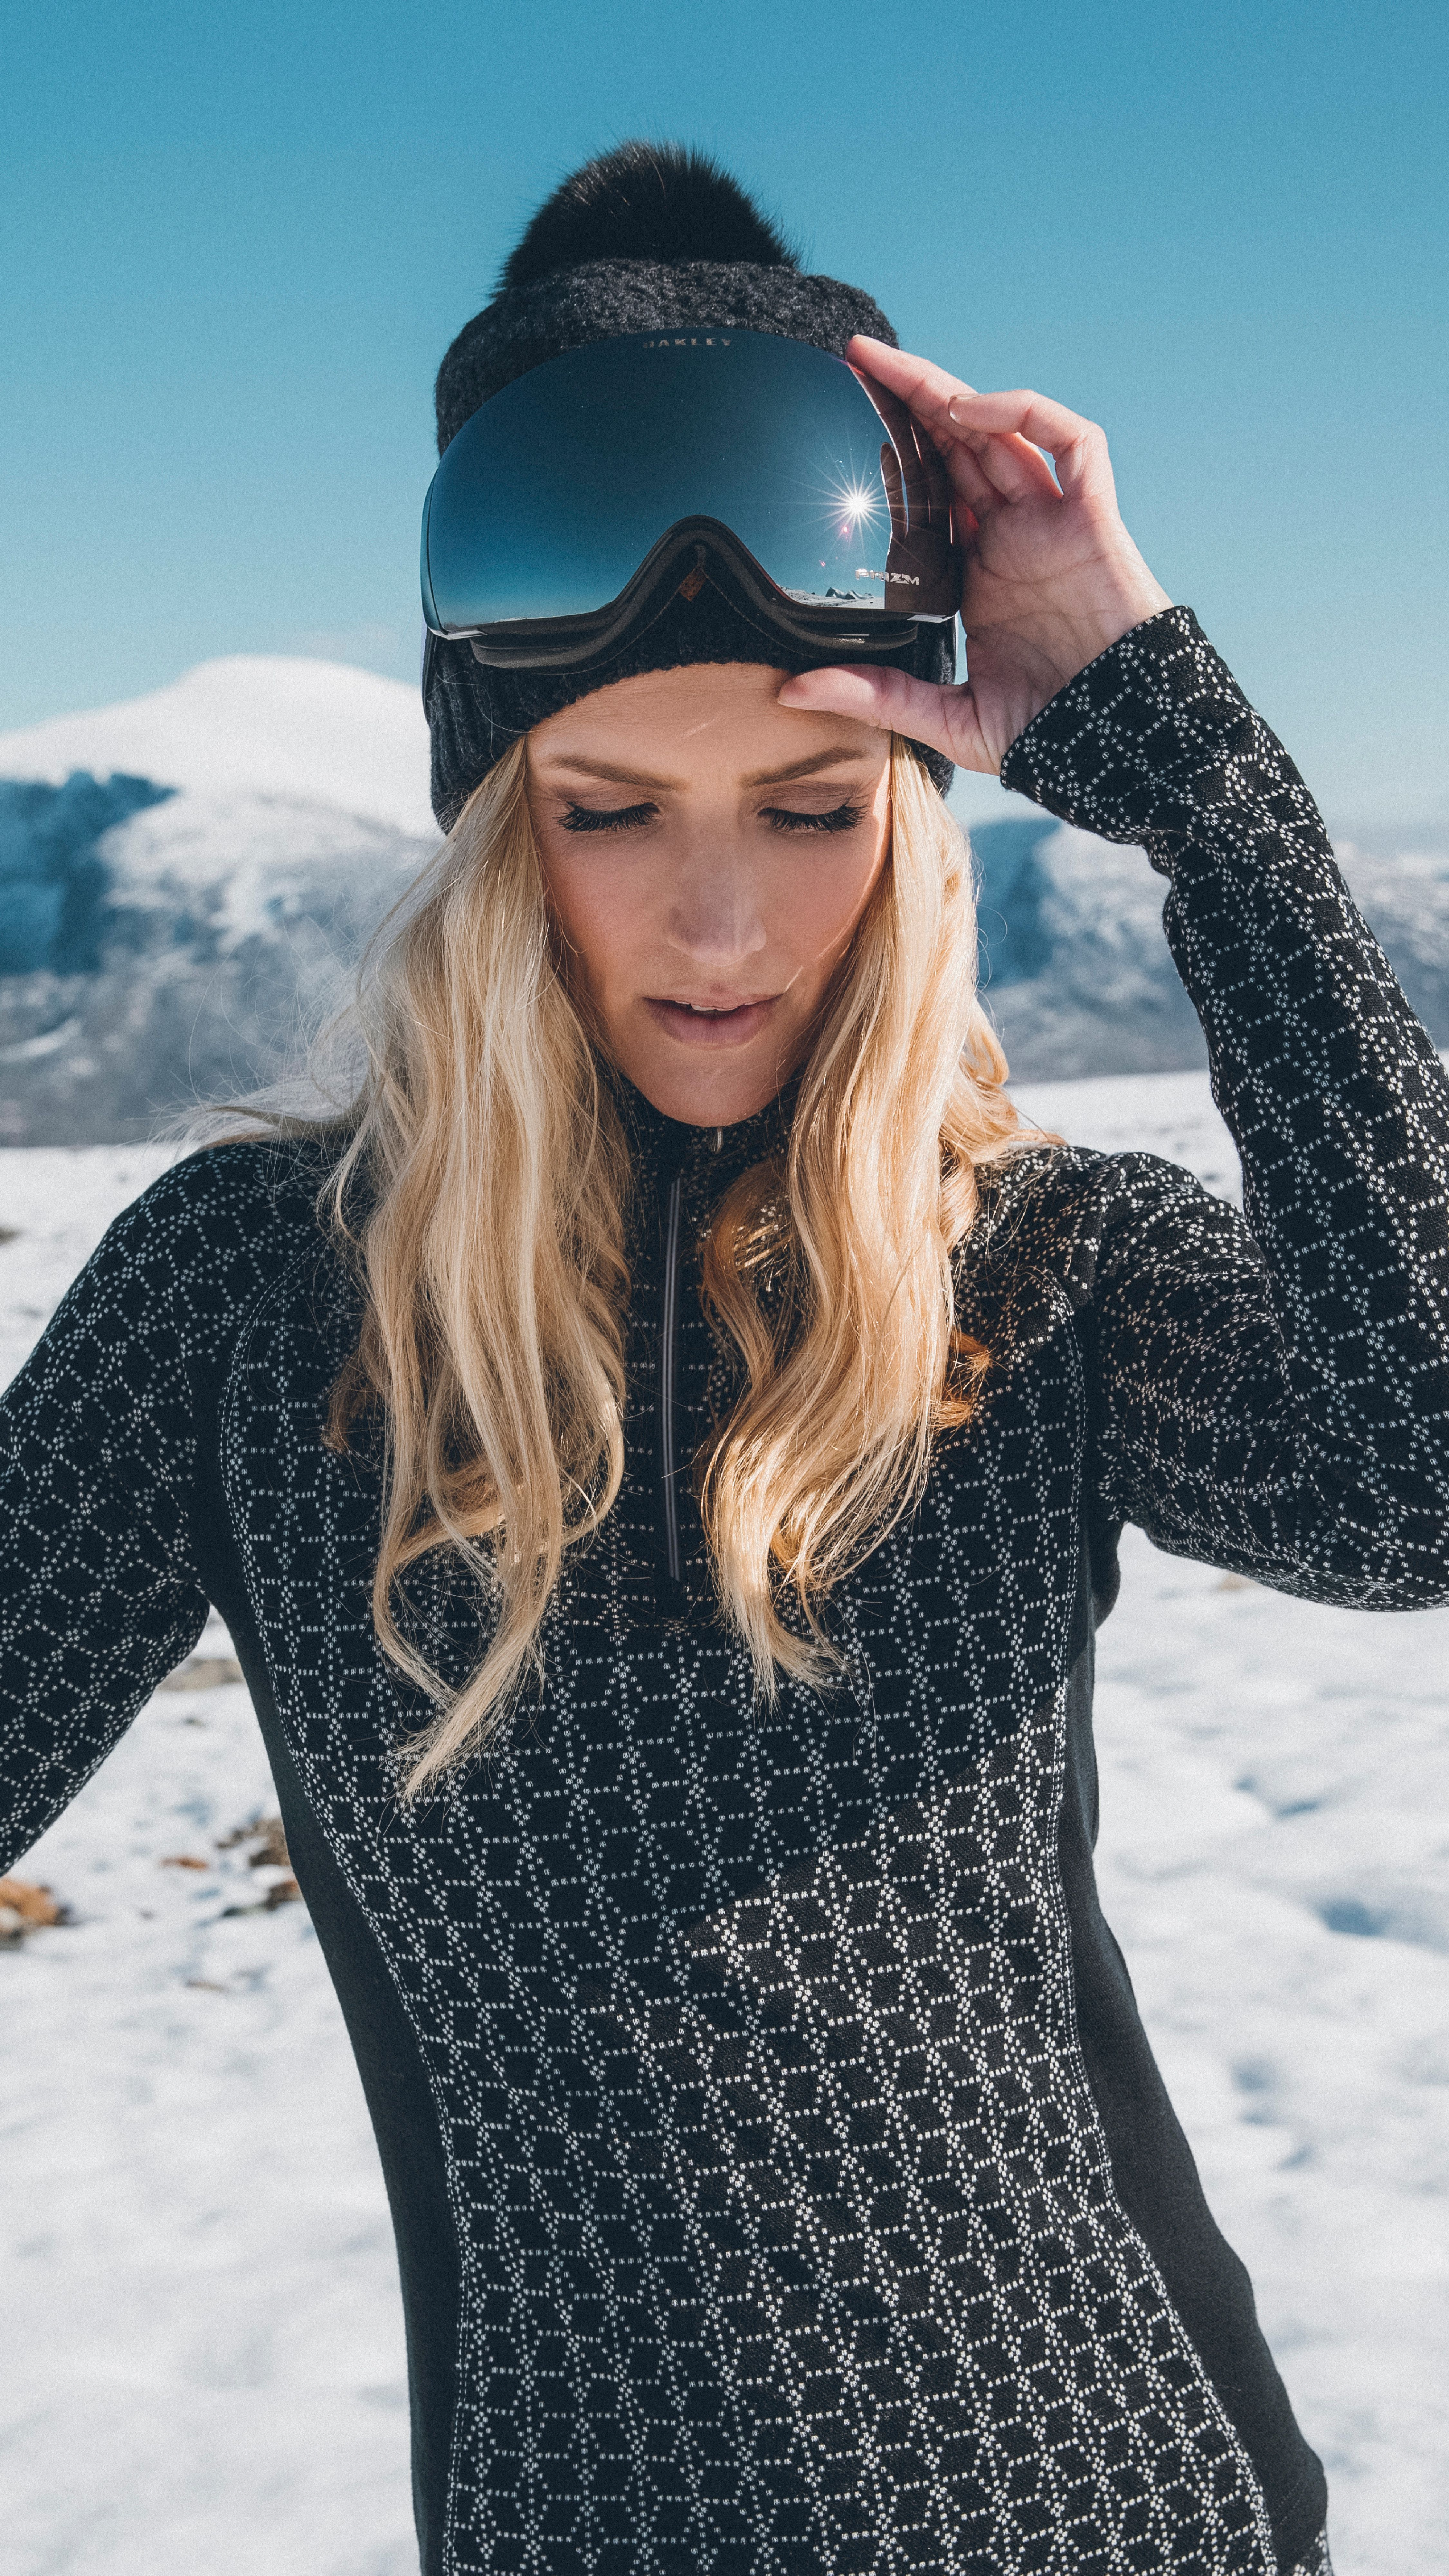 c4e5649b5edd Hit the slopes in style with Stjerne basic women s sweater and Ulv ...